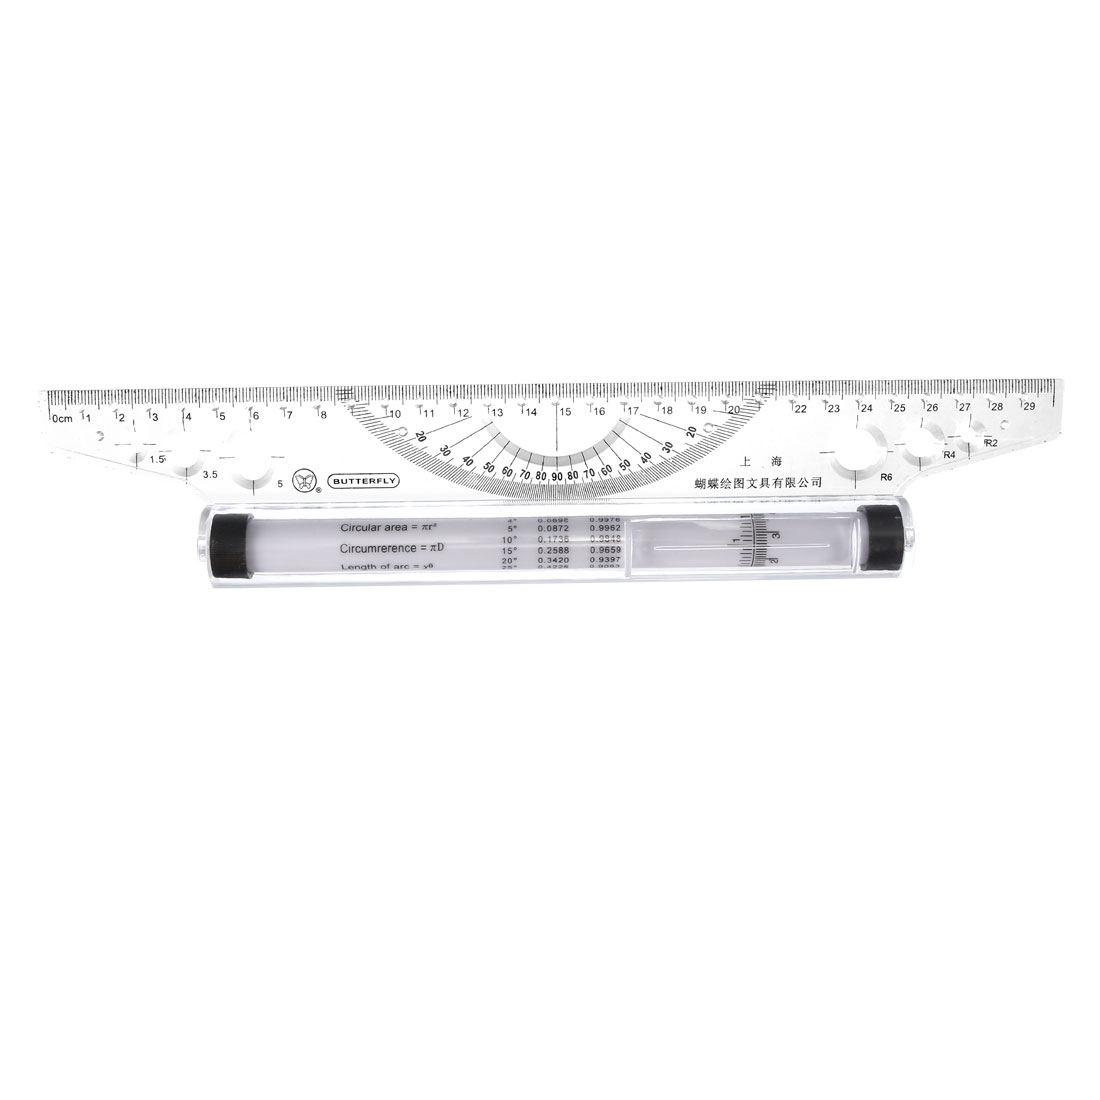 Uxcell Rolling Parallel Ruler 30cm Balancing Scale For Drafting Measuring Drawing Quadrants Squares Circles And Angles